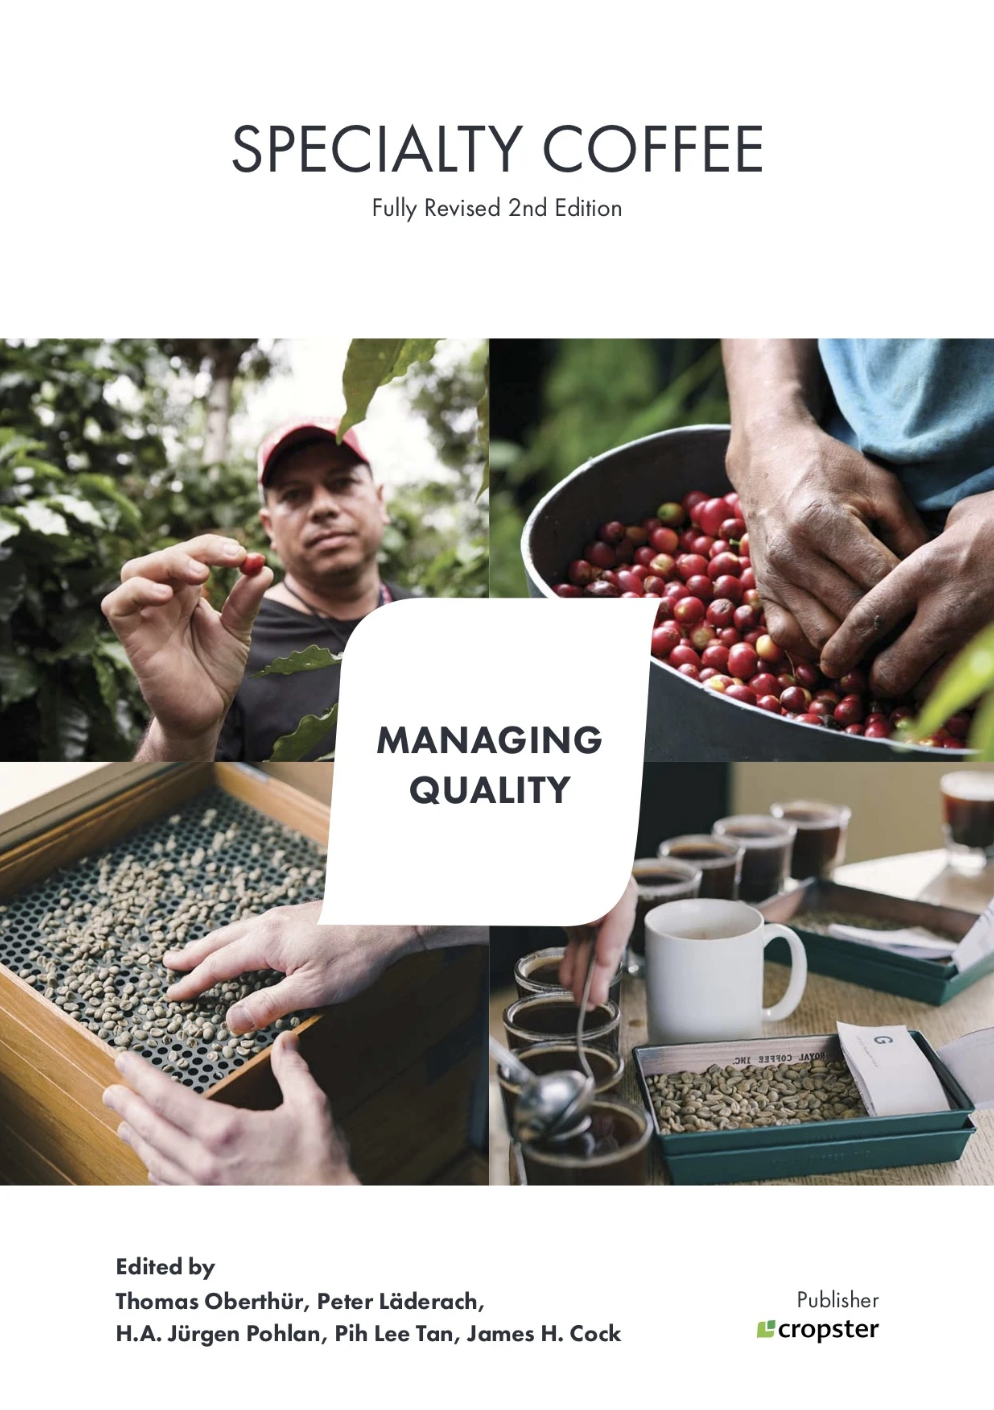 Cropster Specialty Coffee Book